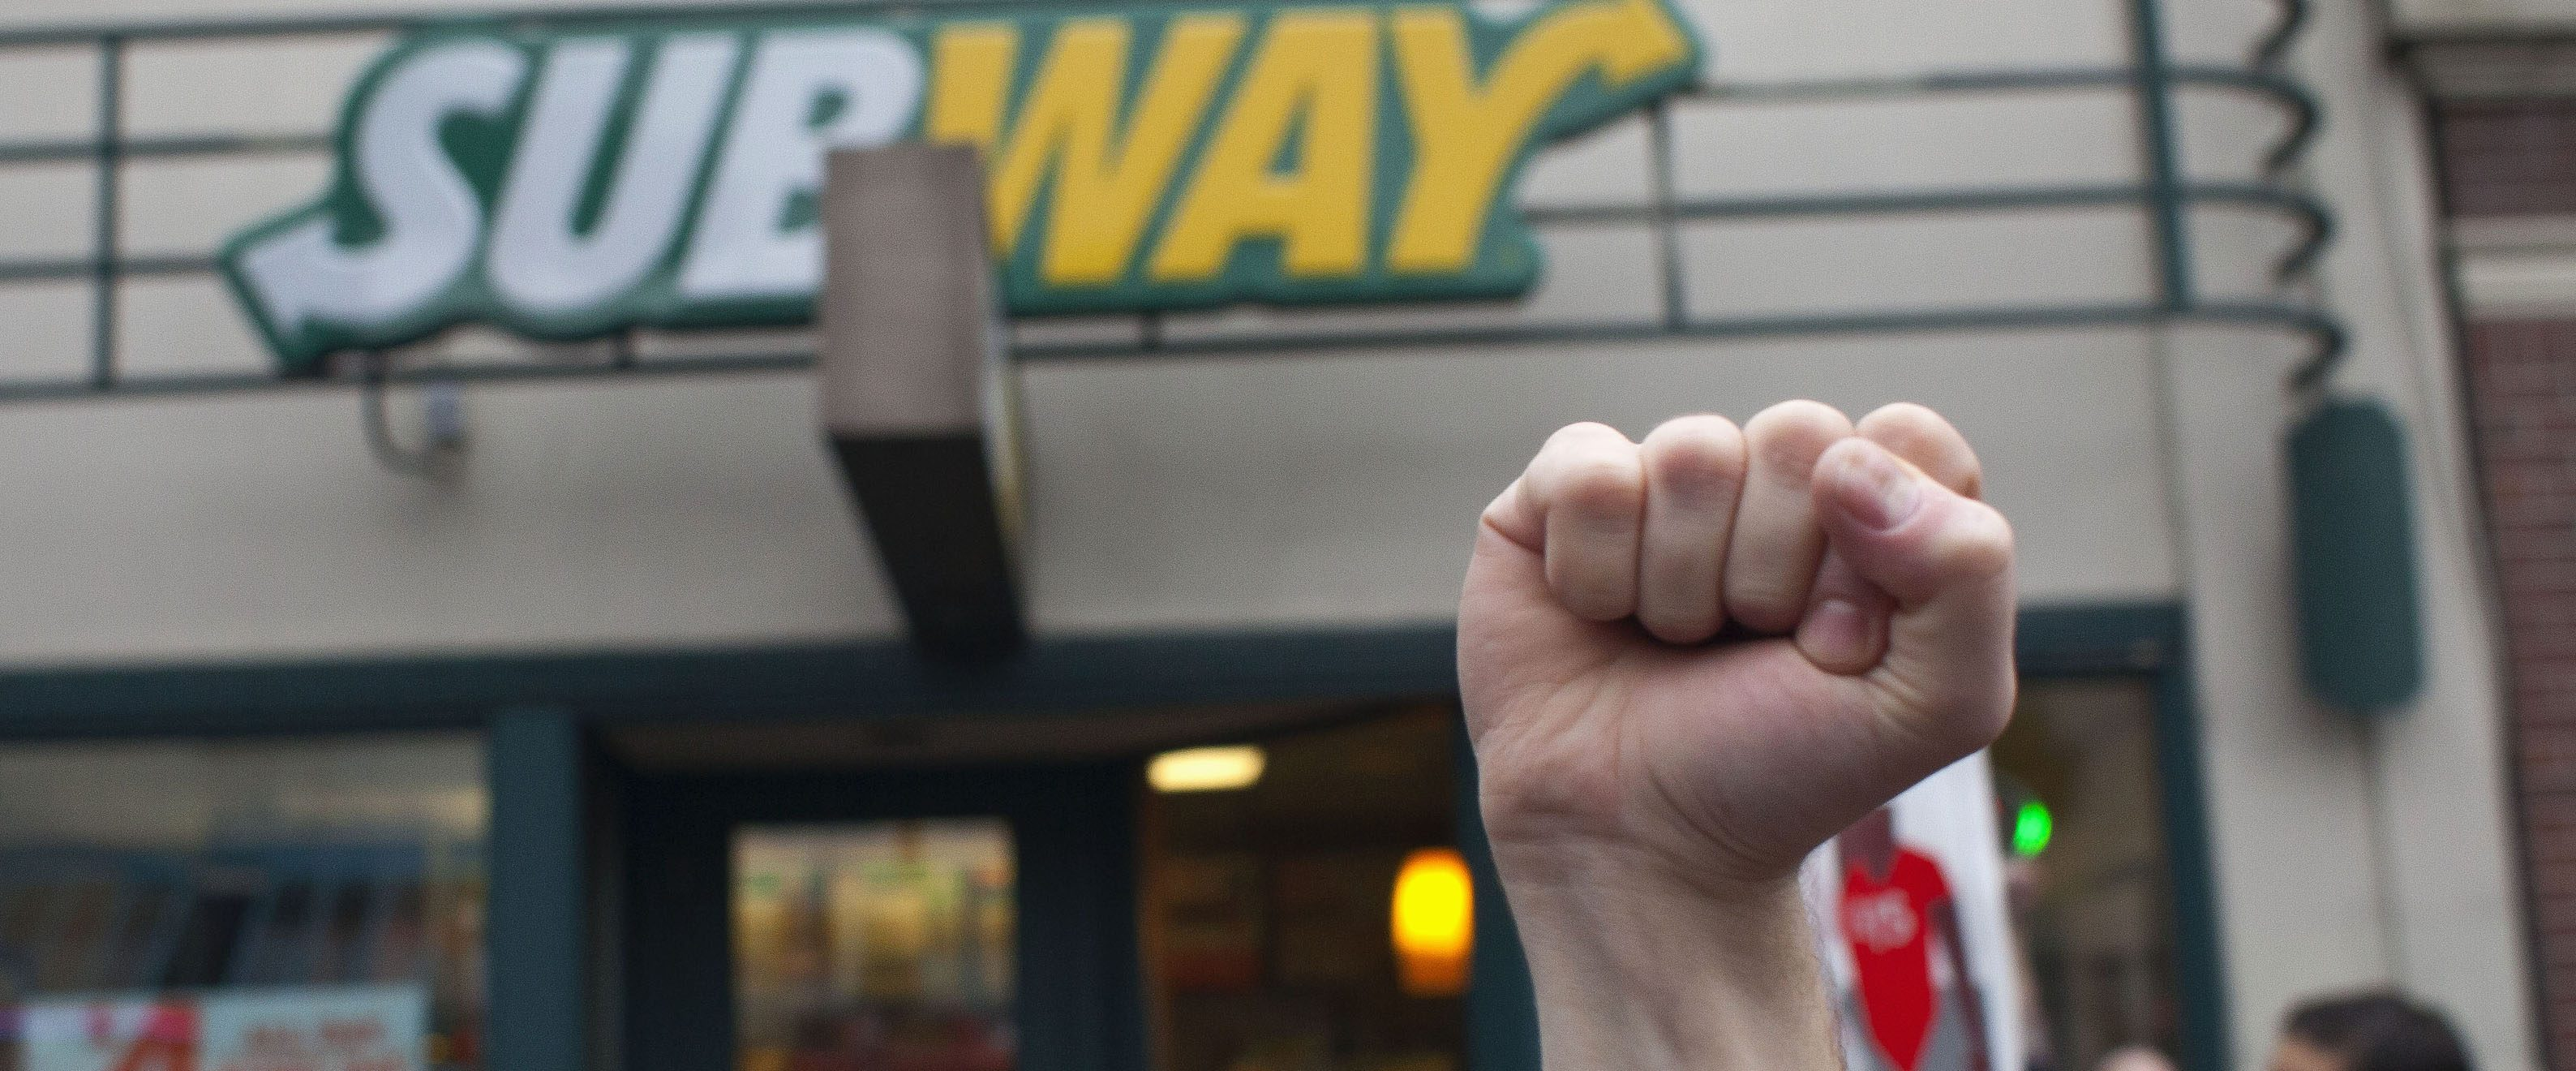 Stephen Baldwin holds his fist in the air outside a Subway restaurant during a strike aimed at the fast-food industry and the minimum wage in Seattle, Washington August 29, 2013. Fast-food workers went on strike and protested outside restaurants in 60 U.S. cities on Thursday, in the largest protest of an almost year-long campaign to raise service sector wages. REUTERS/David Ryder (UNITED STATES - Tags: CIVIL UNREST BUSINESS FOOD EMPLOYMENT) - RTX13160